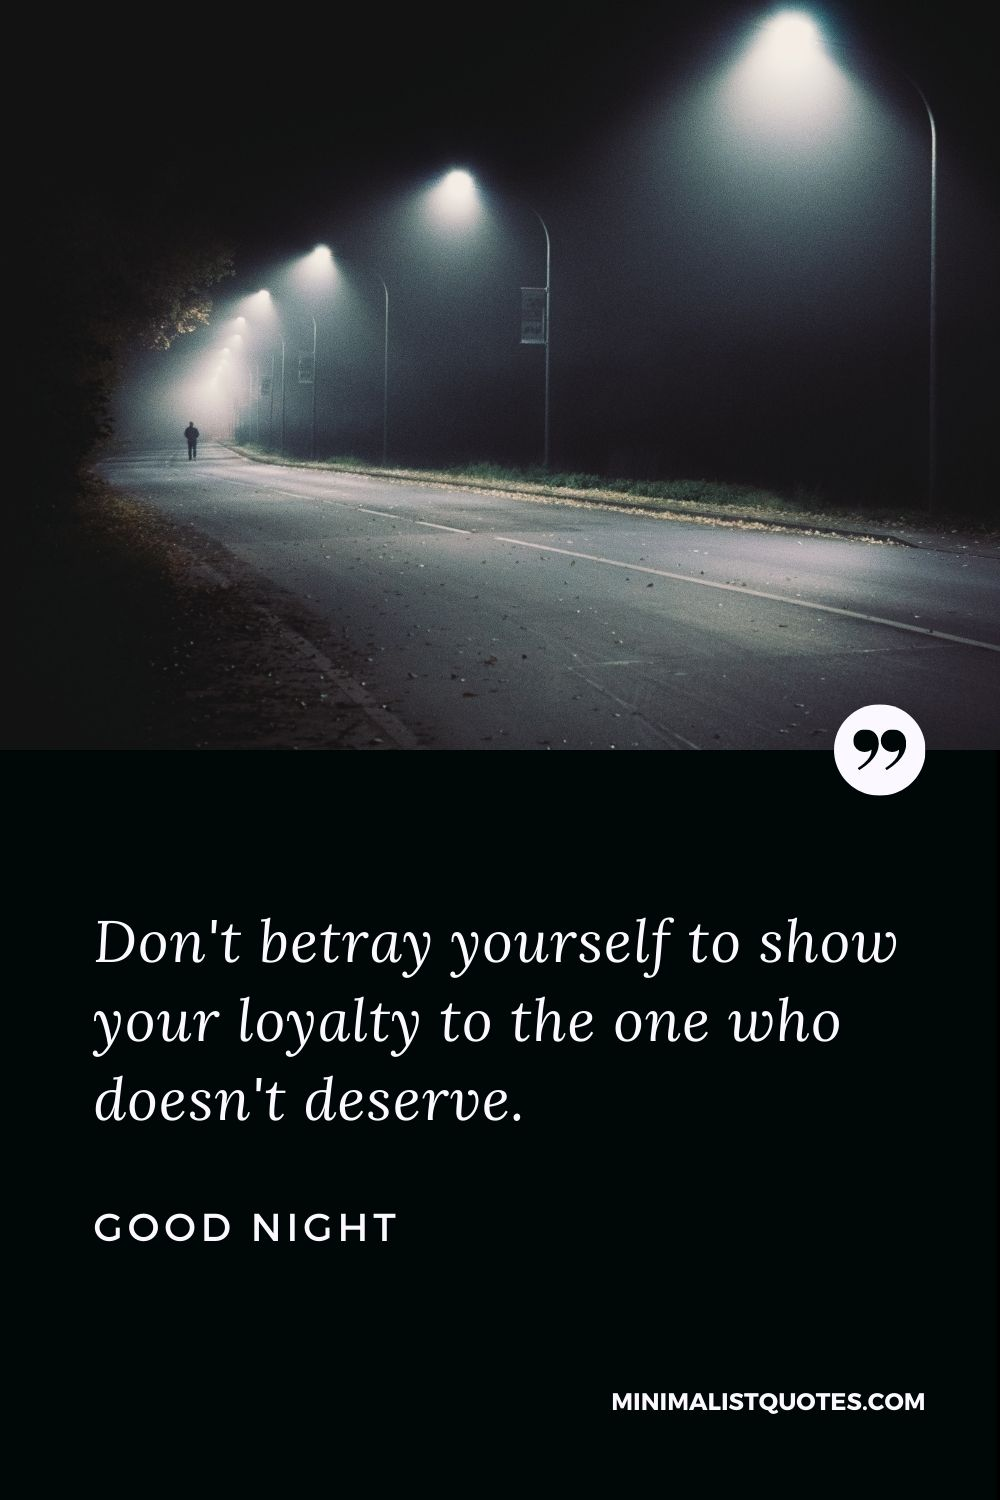 Good Night Wishes - Don't betrayyourself to show your loyalty to the one who doesn't deserve.